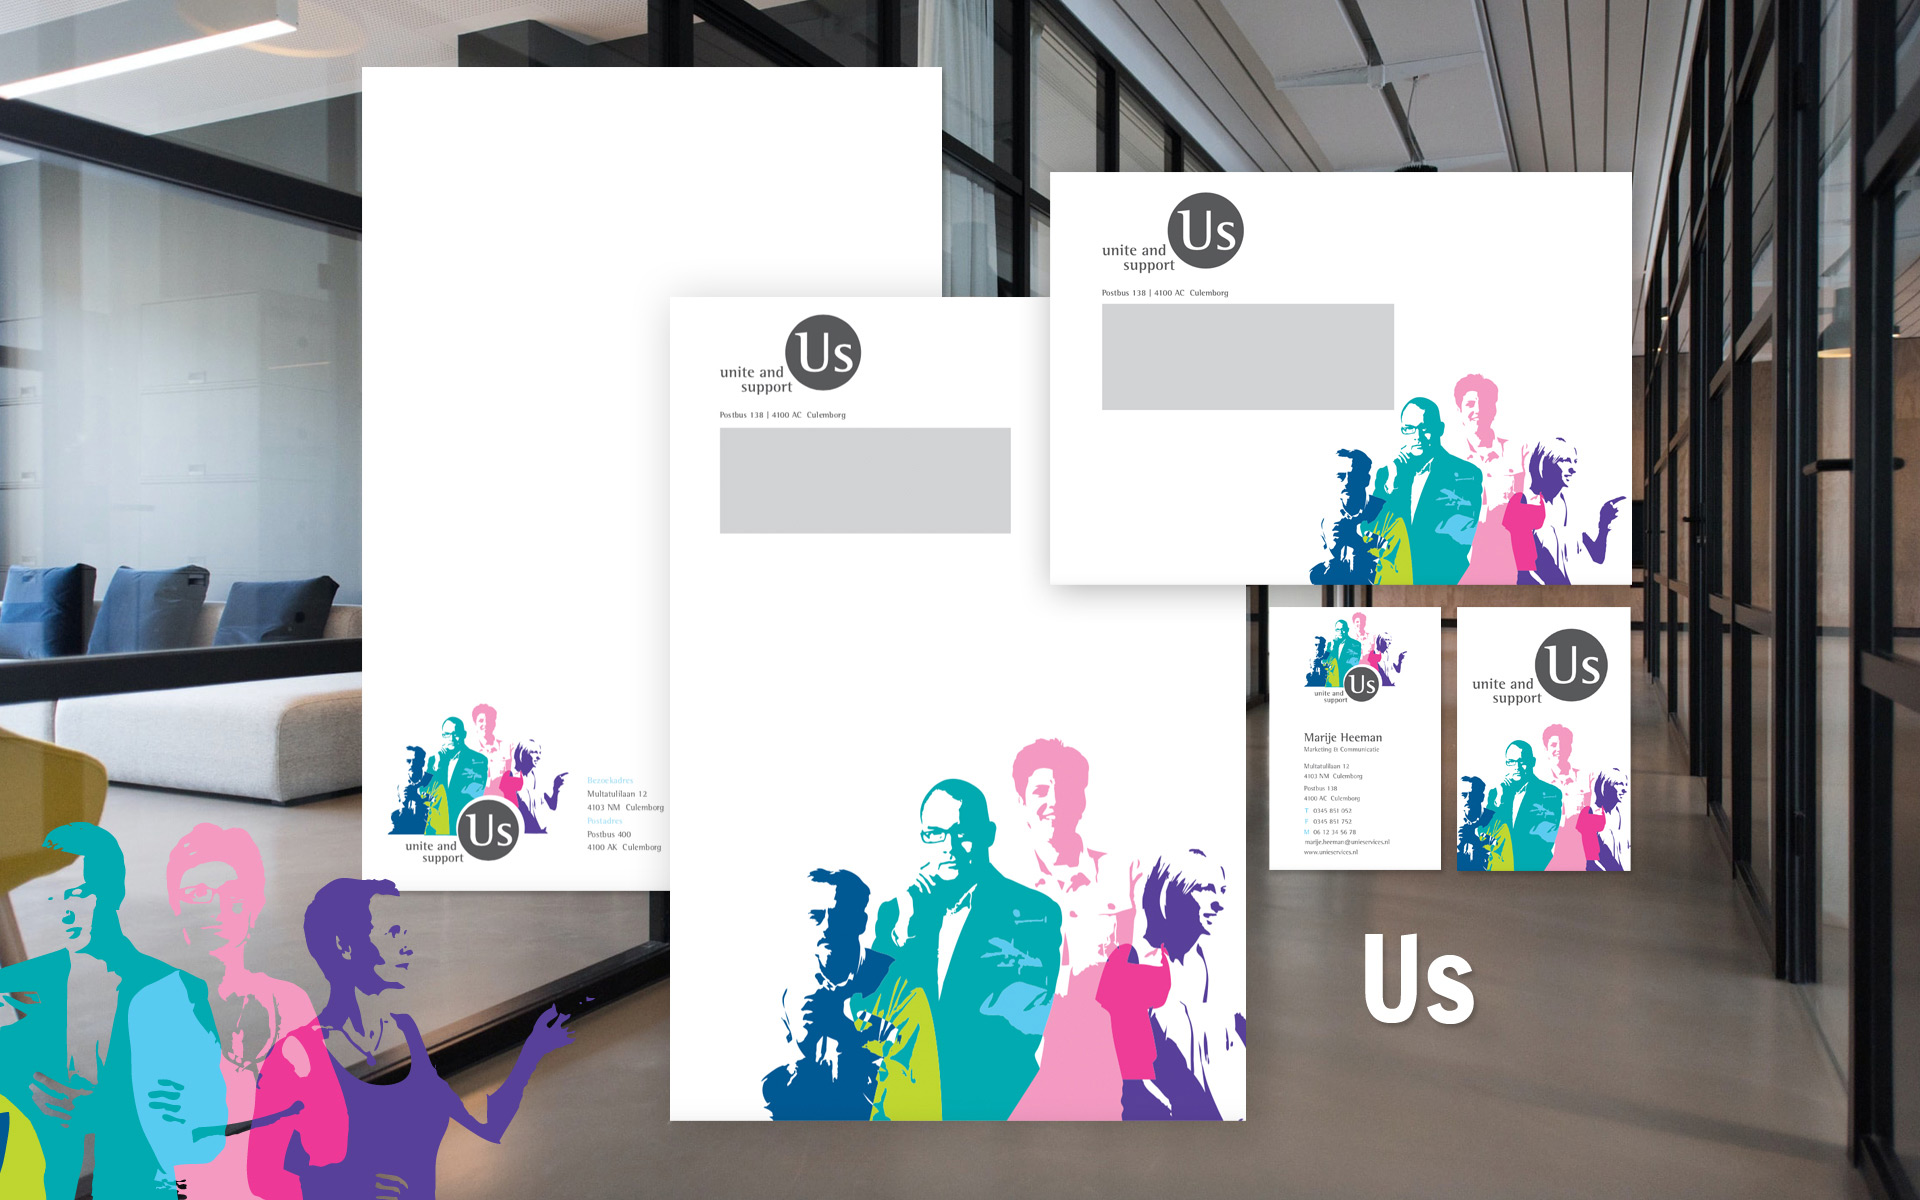 https://loesjezaakjes.nl/wp-content/uploads/2020/09/Loesjezaakjes_Portfolio_Corporatedesign_Us1.jpg